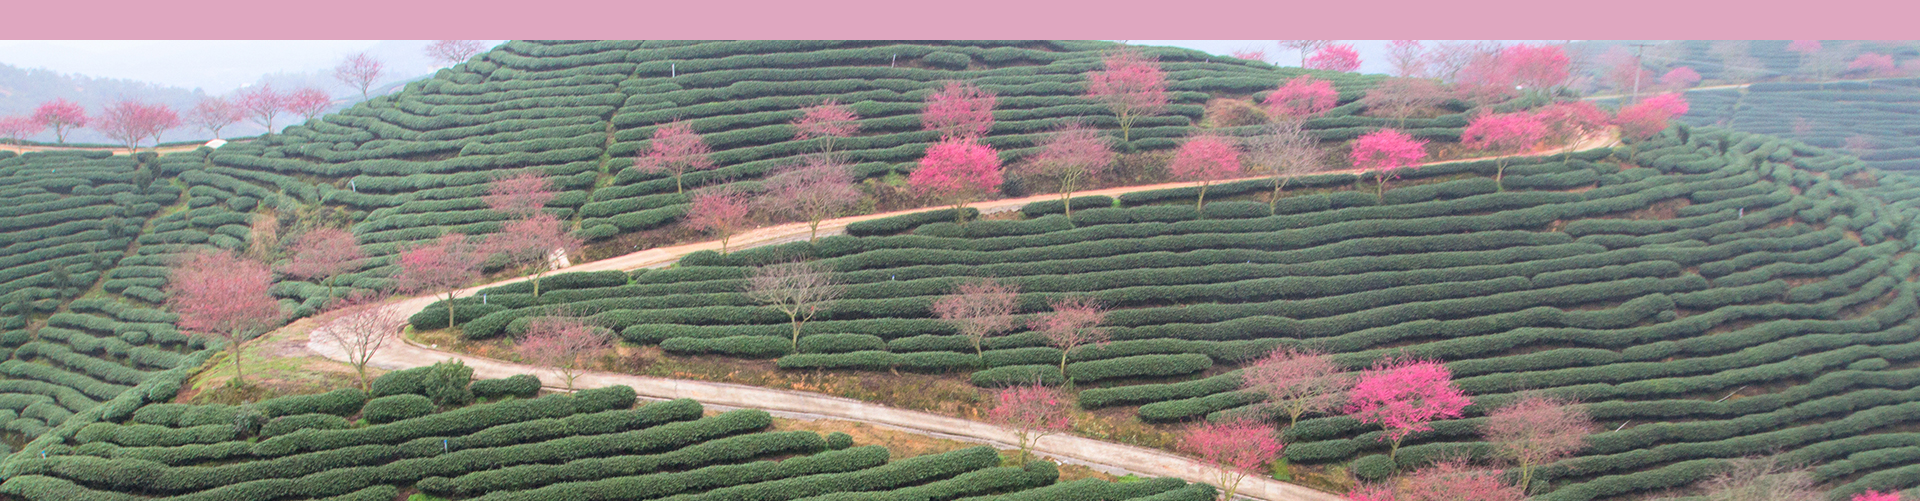 green tea fields and cherry trees